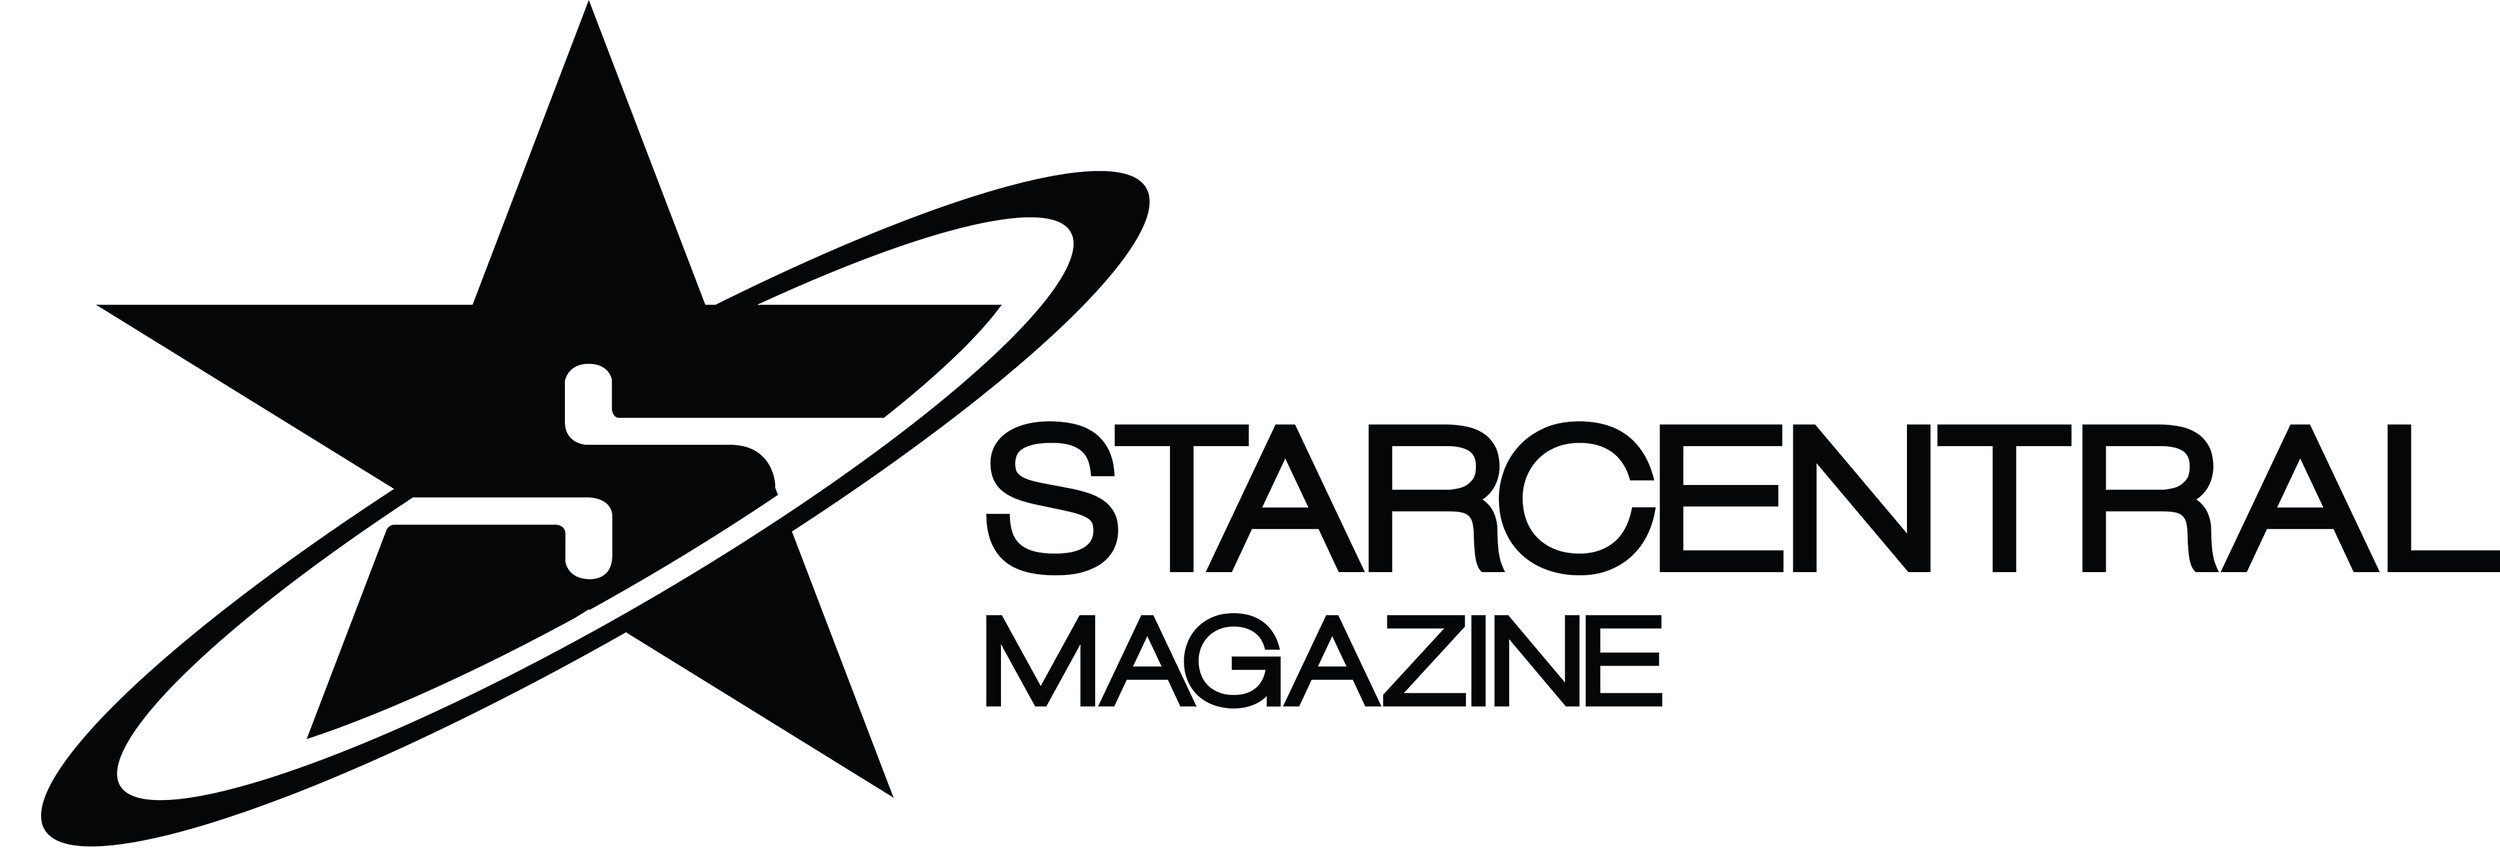 Star Central is a publication that informs and promotes local artists, models, actors and entrepreneurs from all over the world. The aim of the magazine is to make the world aware that there are so much hidden talent out there that remains overlooked, untapped and undervalued.   StarCentral Magazine is widely recognized as one of the leading entertainment sources in Australia that provides up and coming talents with an authentic platform.